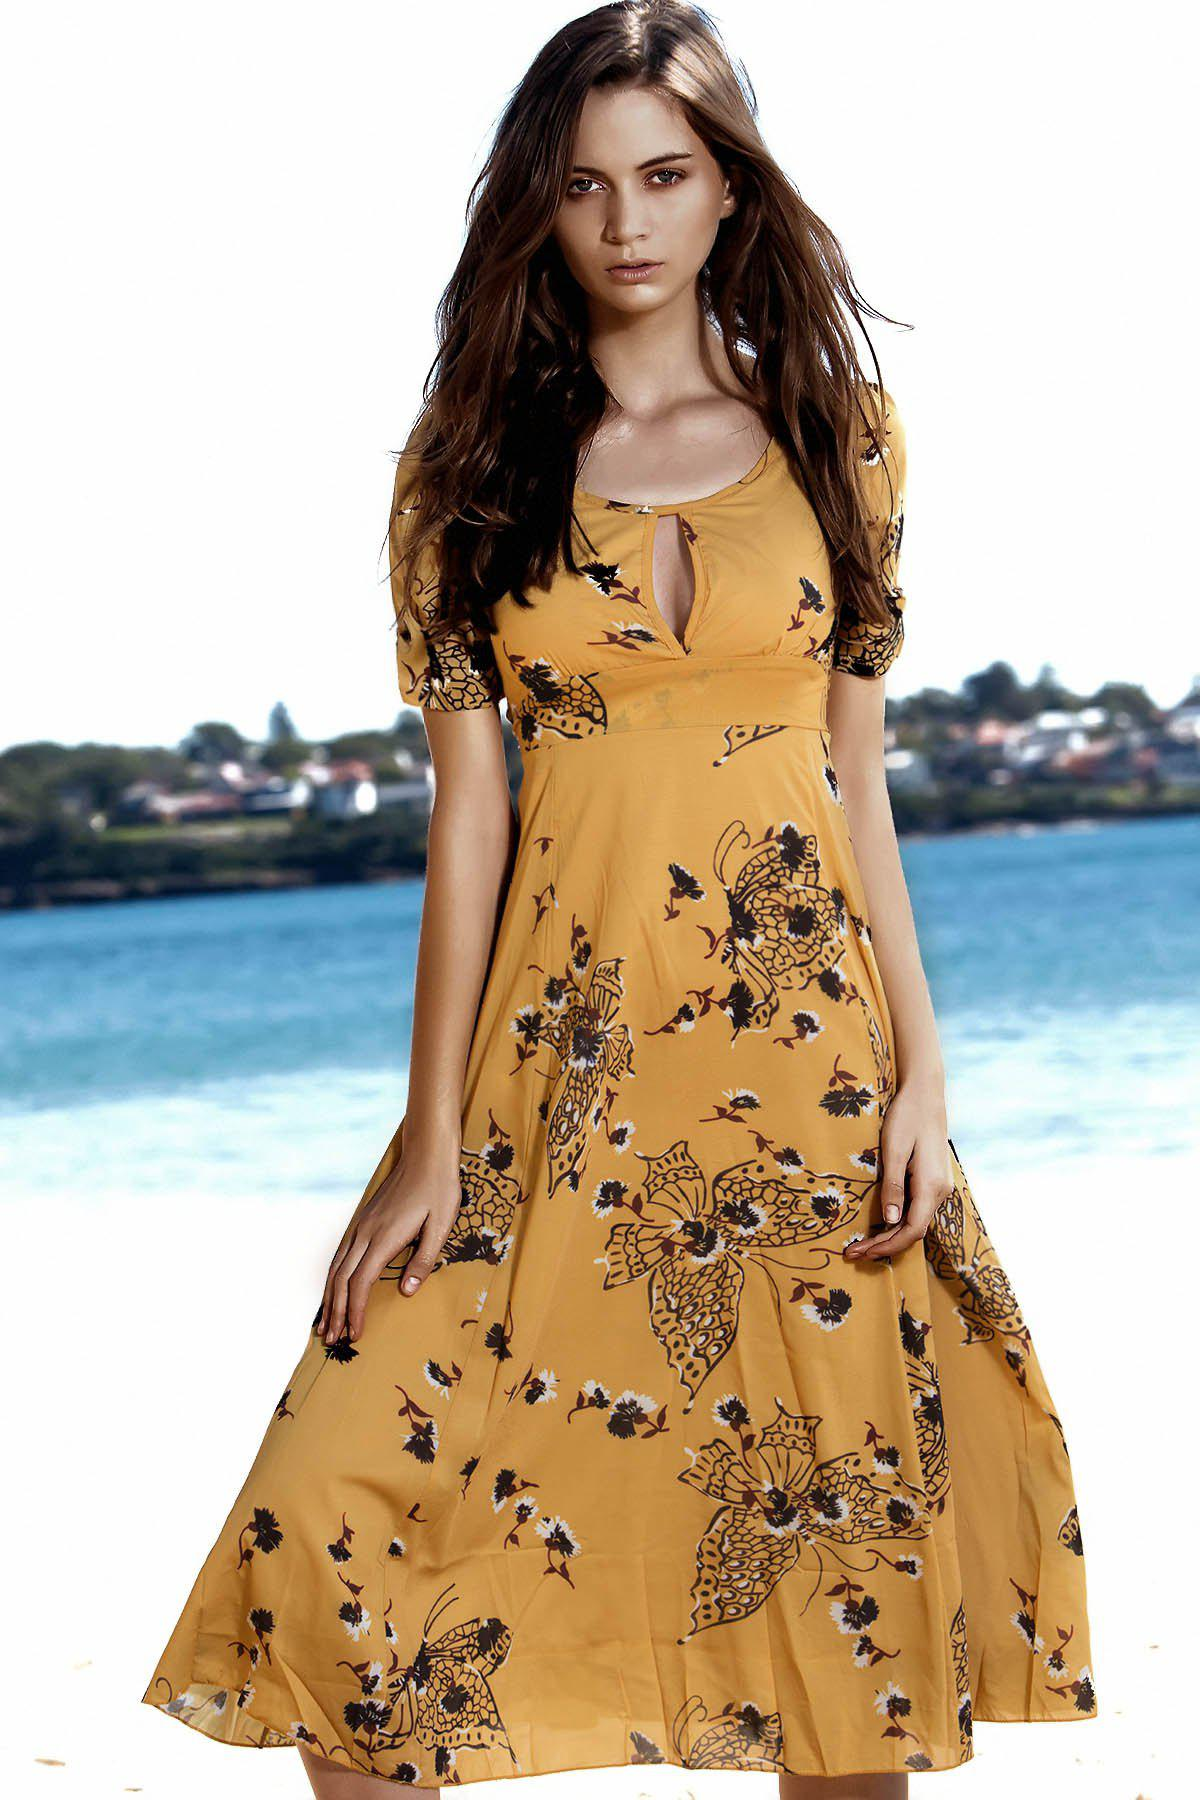 Elegant Round Neck Short Sleeve Floral Butterfly Print High-Waisted Women's Dress - YELLOW S